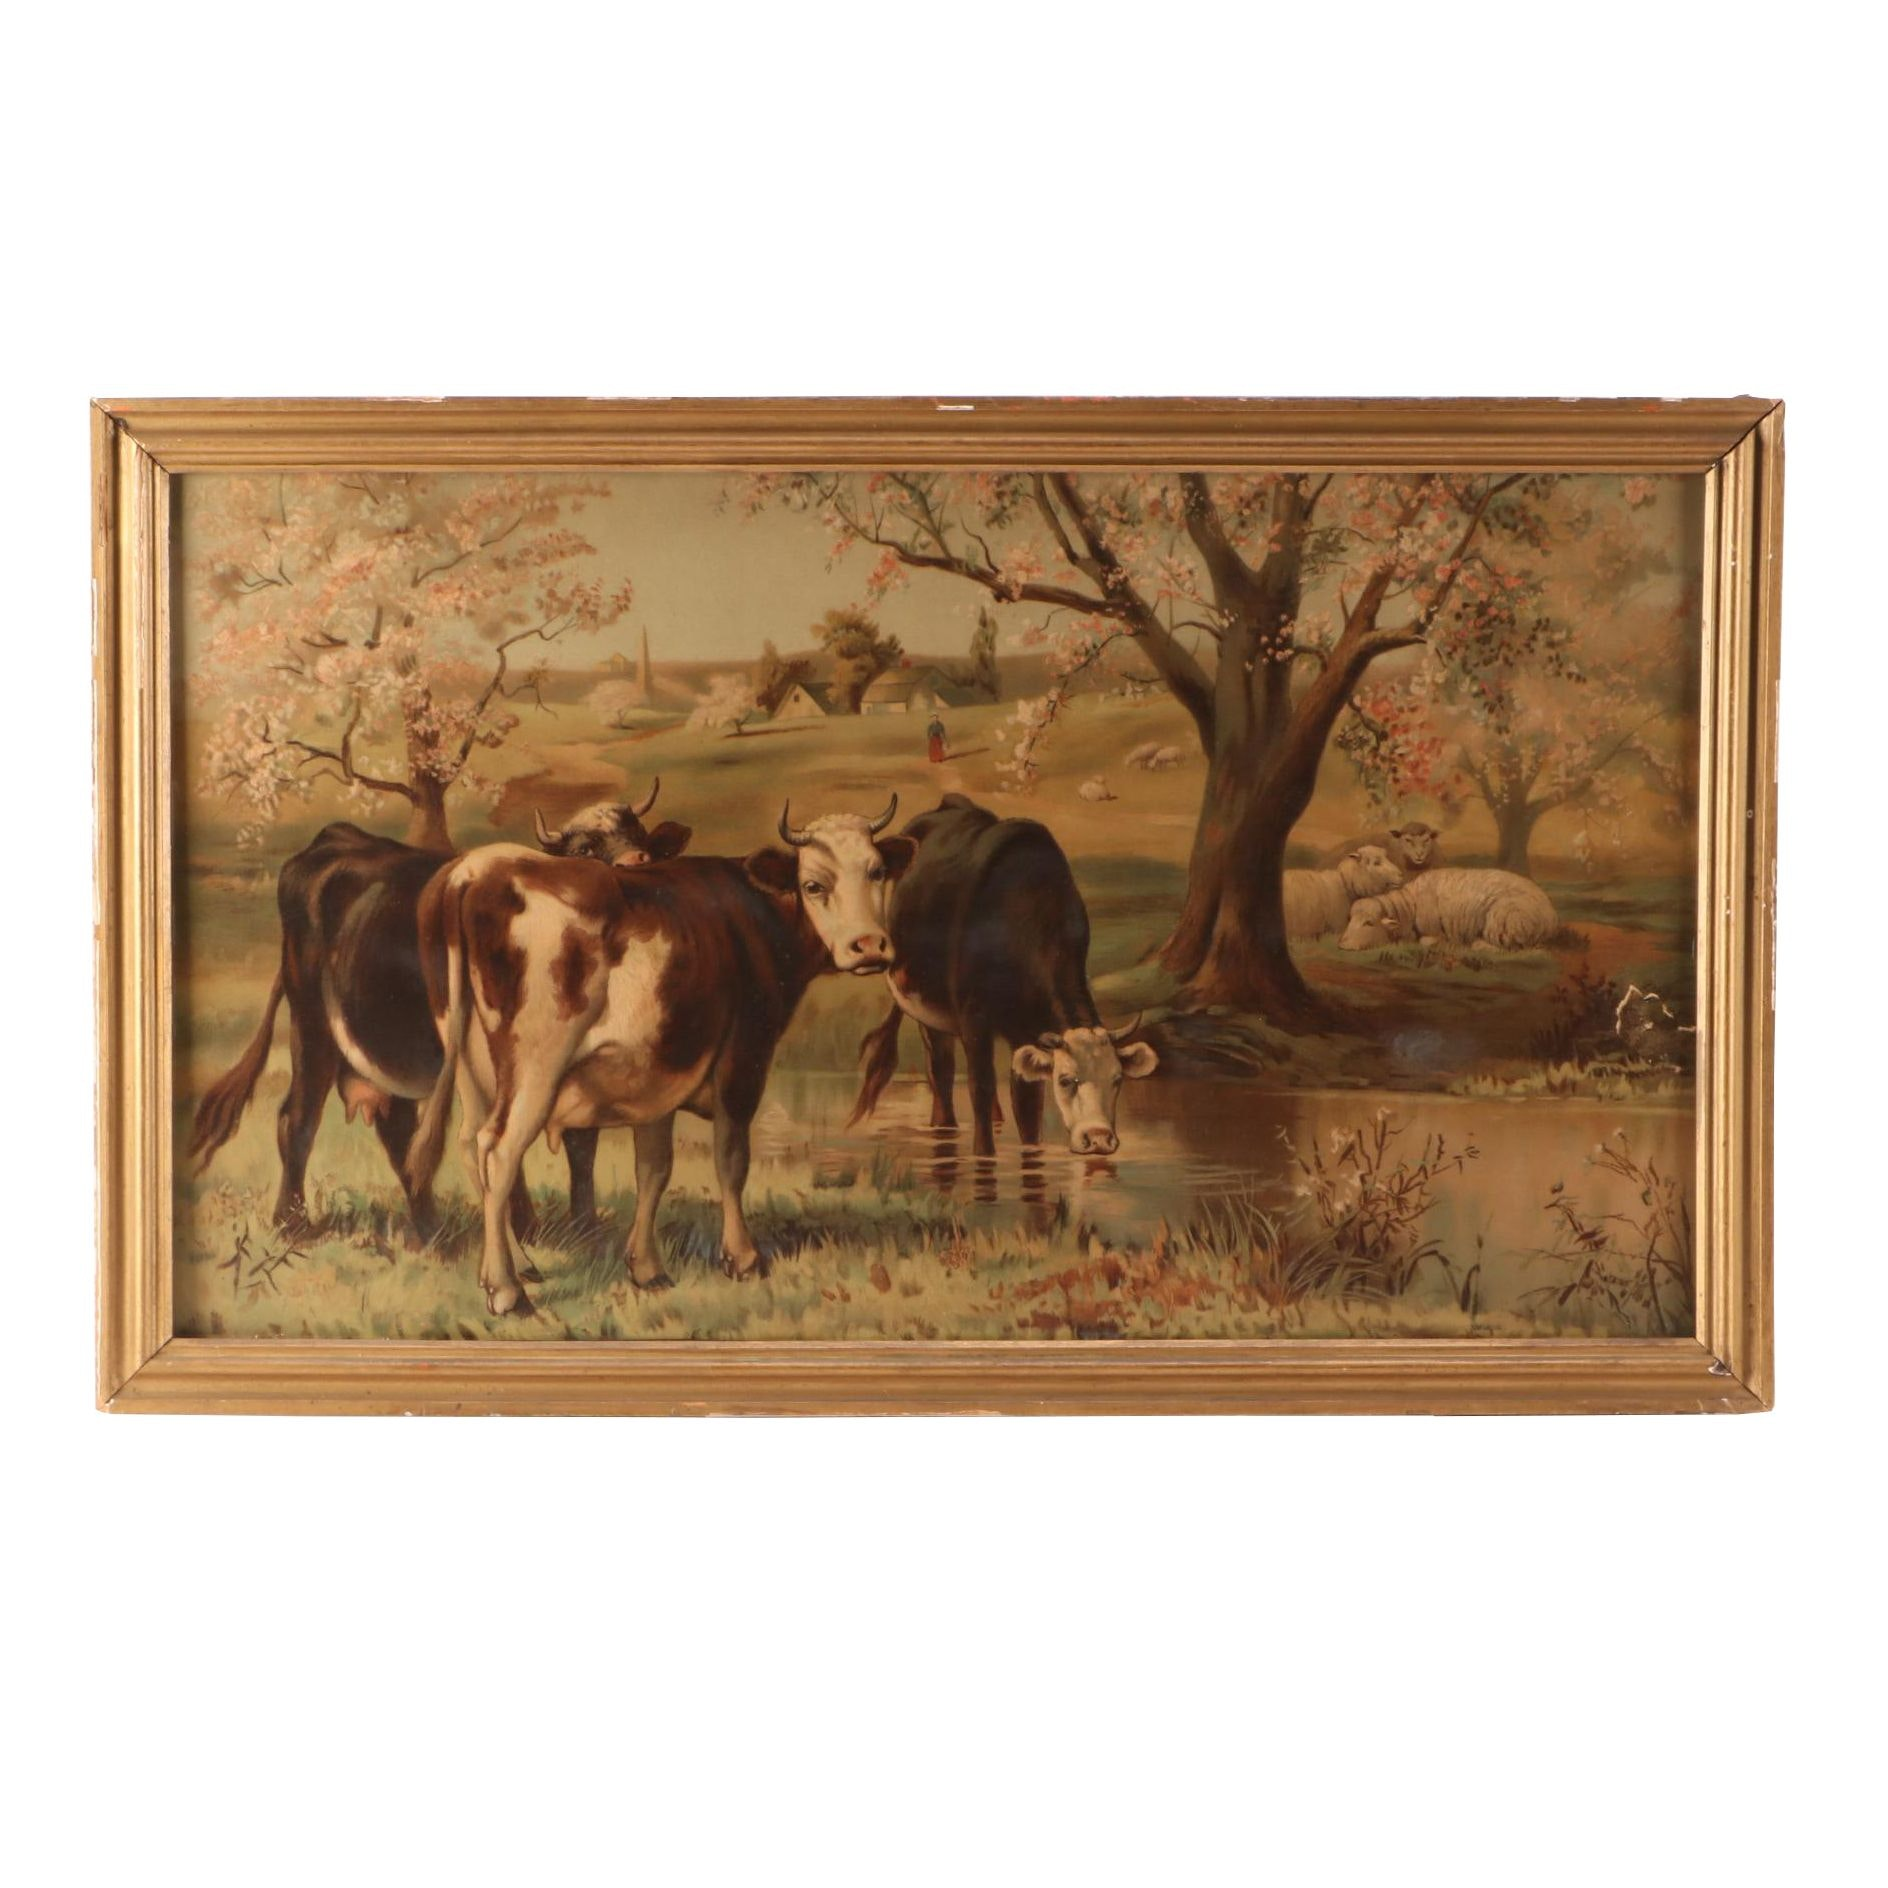 Antique Chromolithograph of a Pastoral Landscape